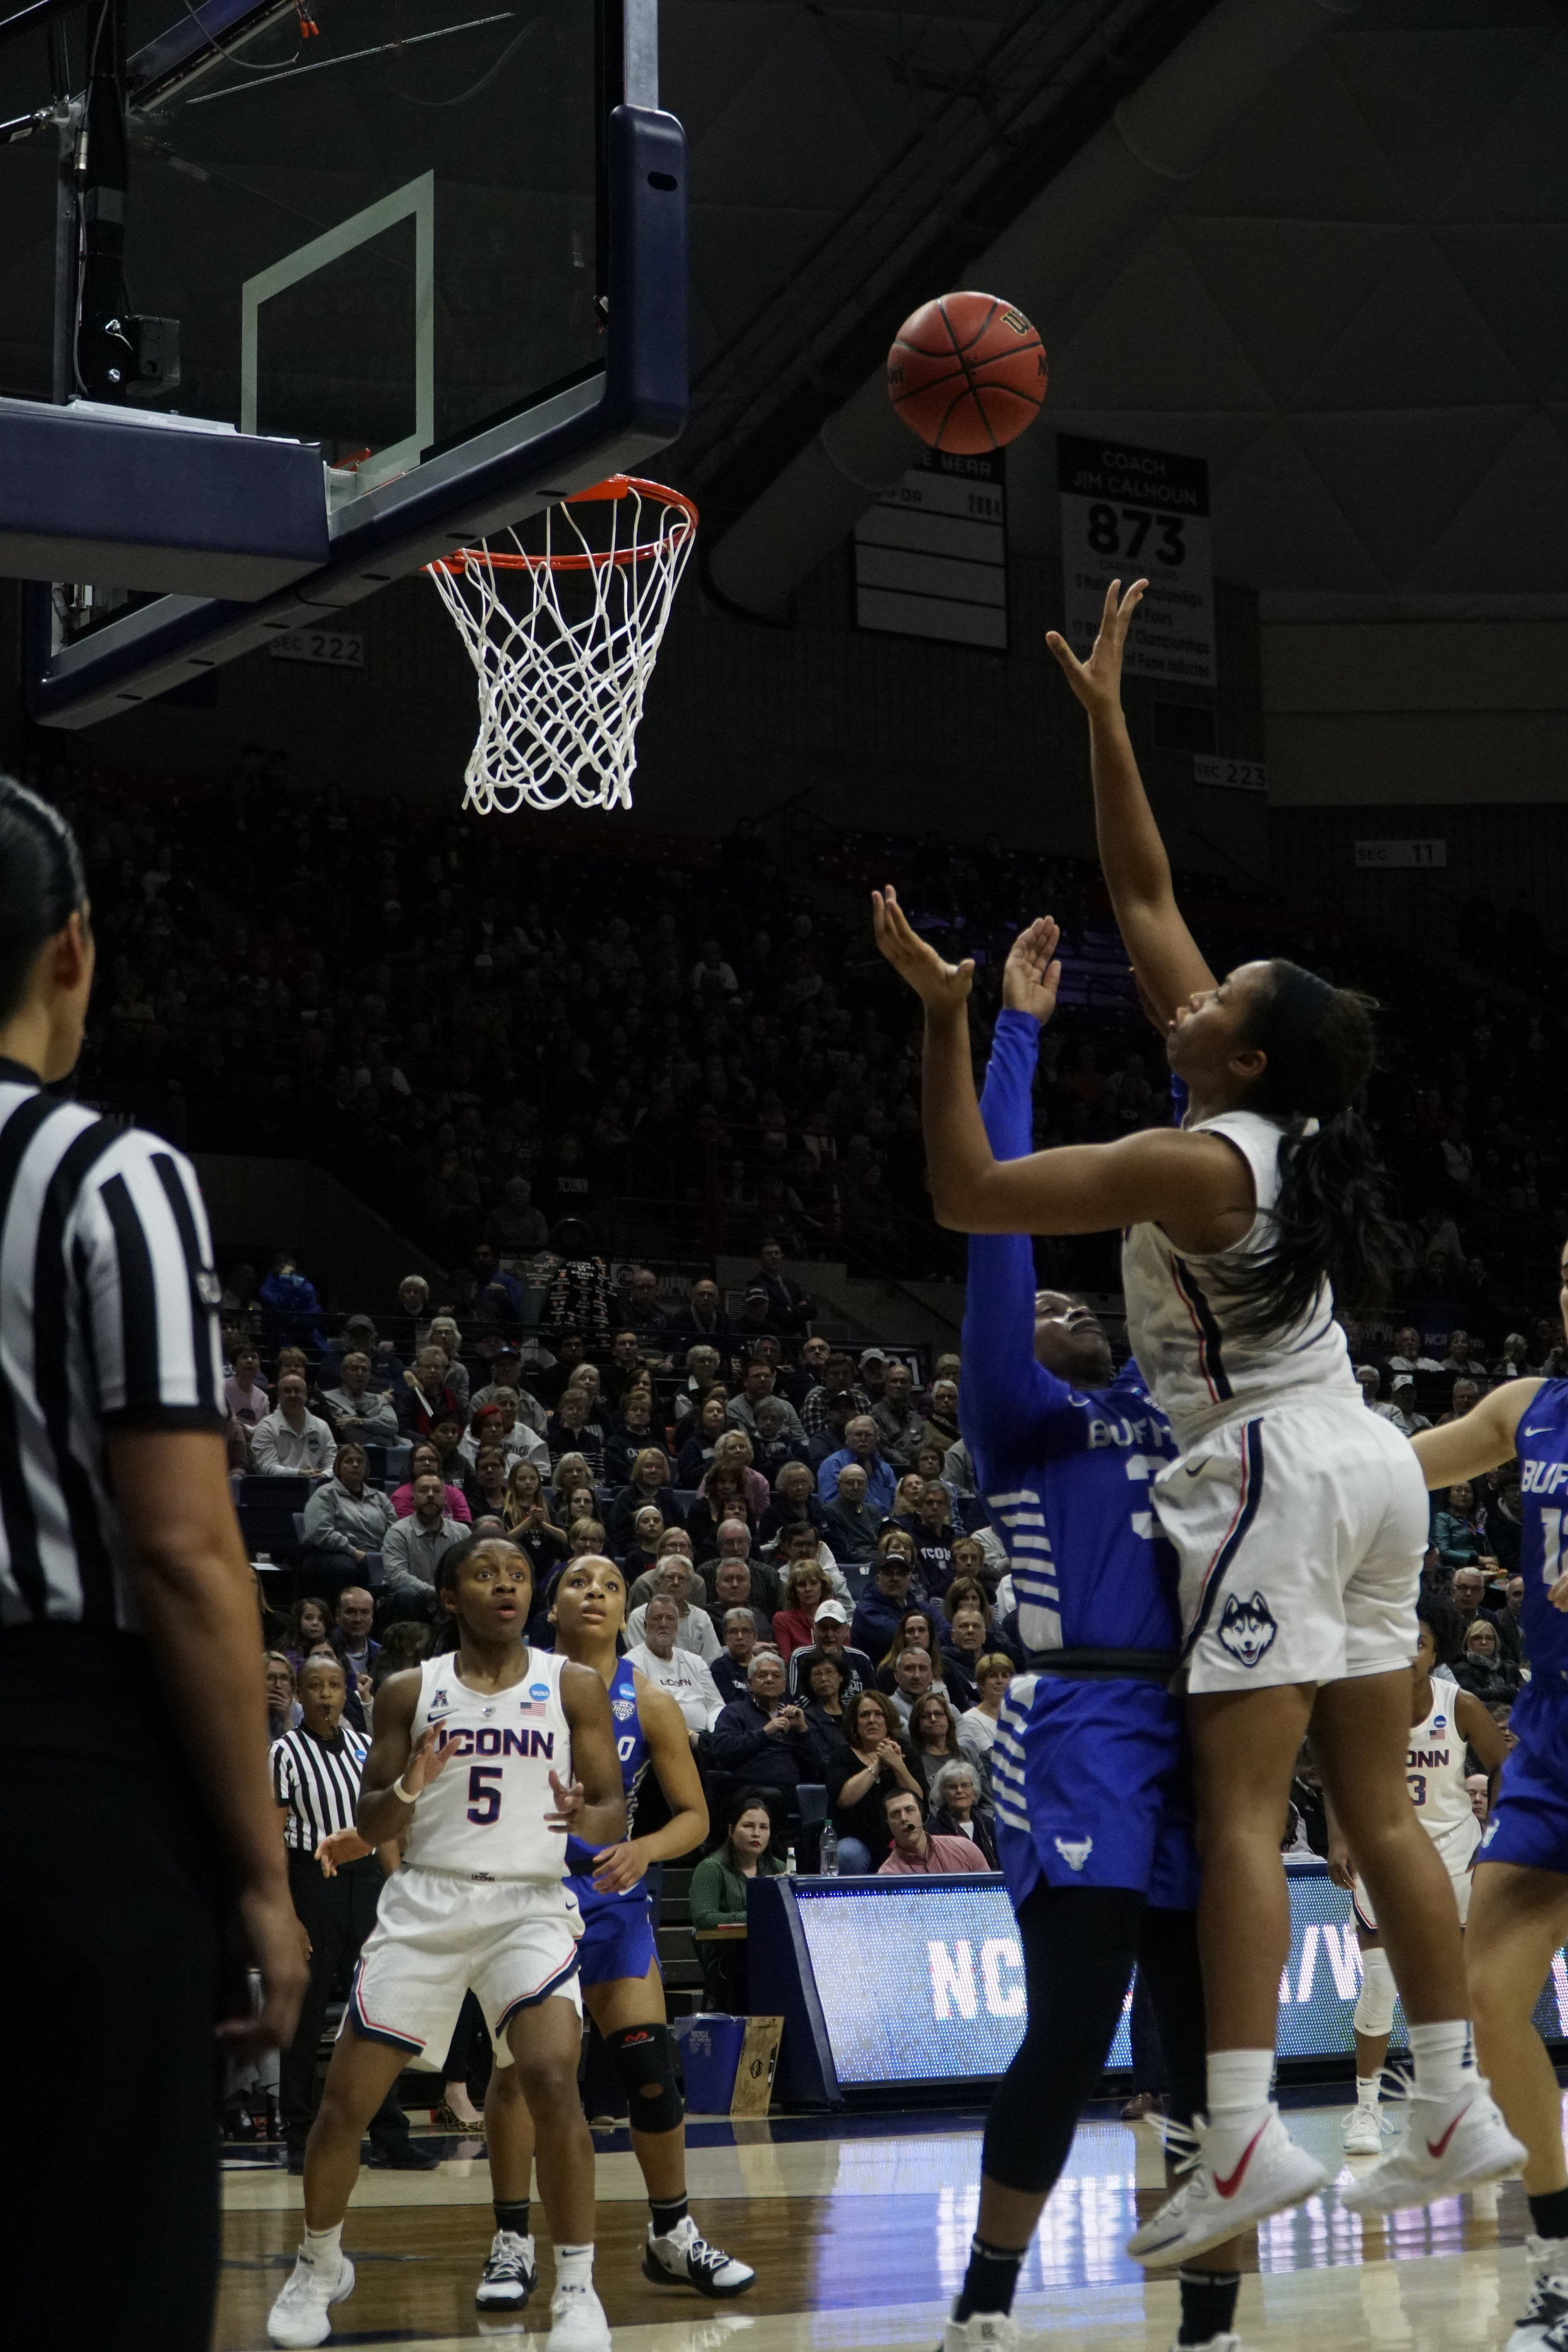 The Huskies need Megan Walker to play her best in order to help secure their 12th National Championship (Photo by Eric Wang/The Daily Campus)